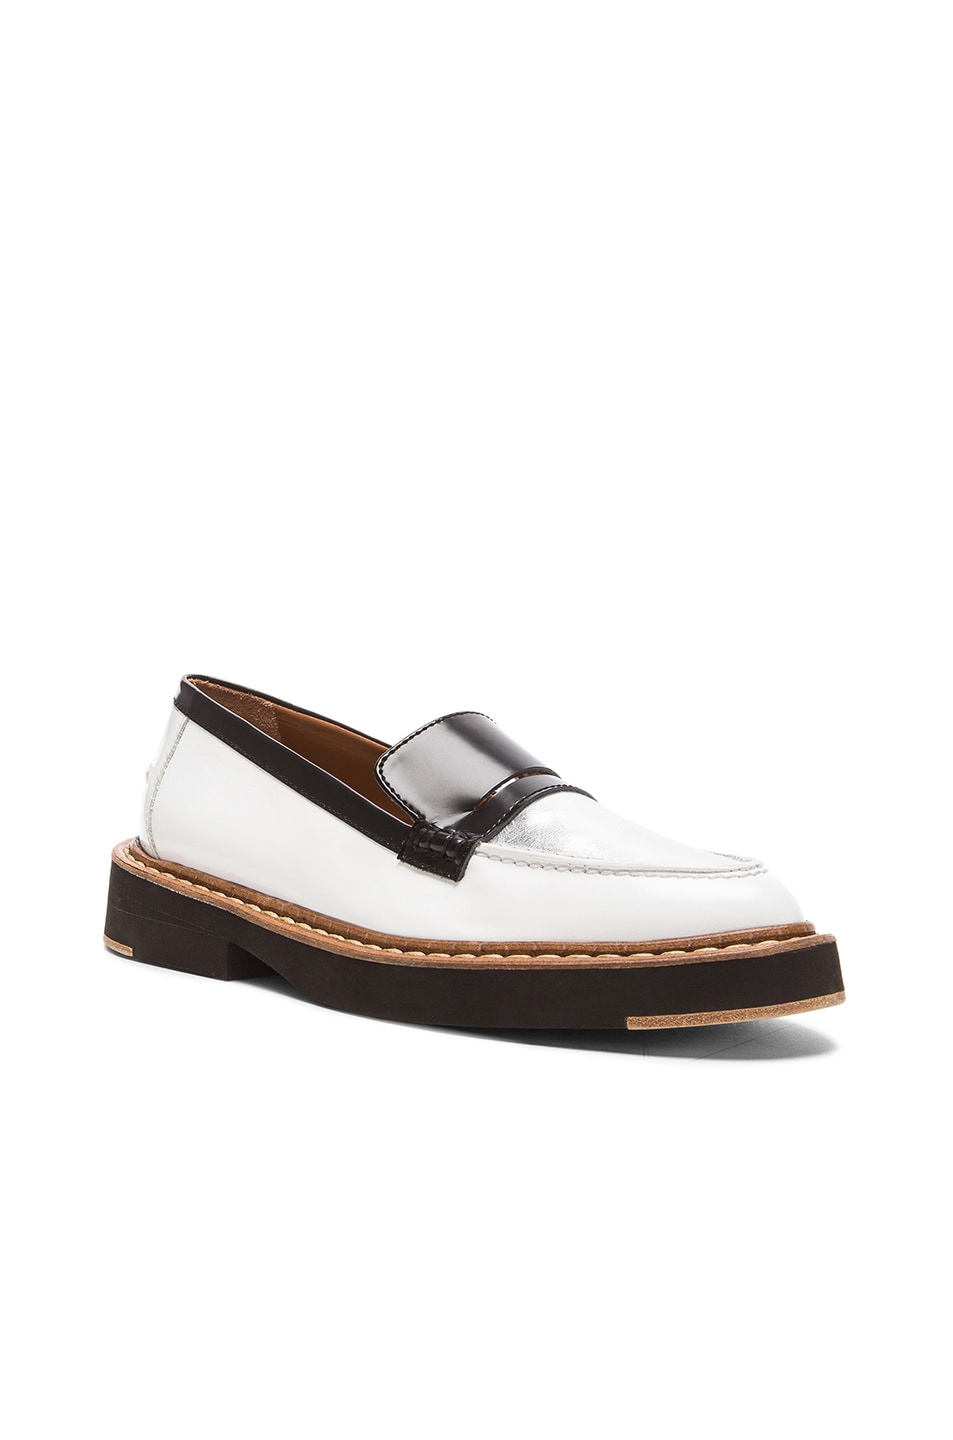 Image 2 of Flamingos Walton Leather Loafers in Black, Silver, & White